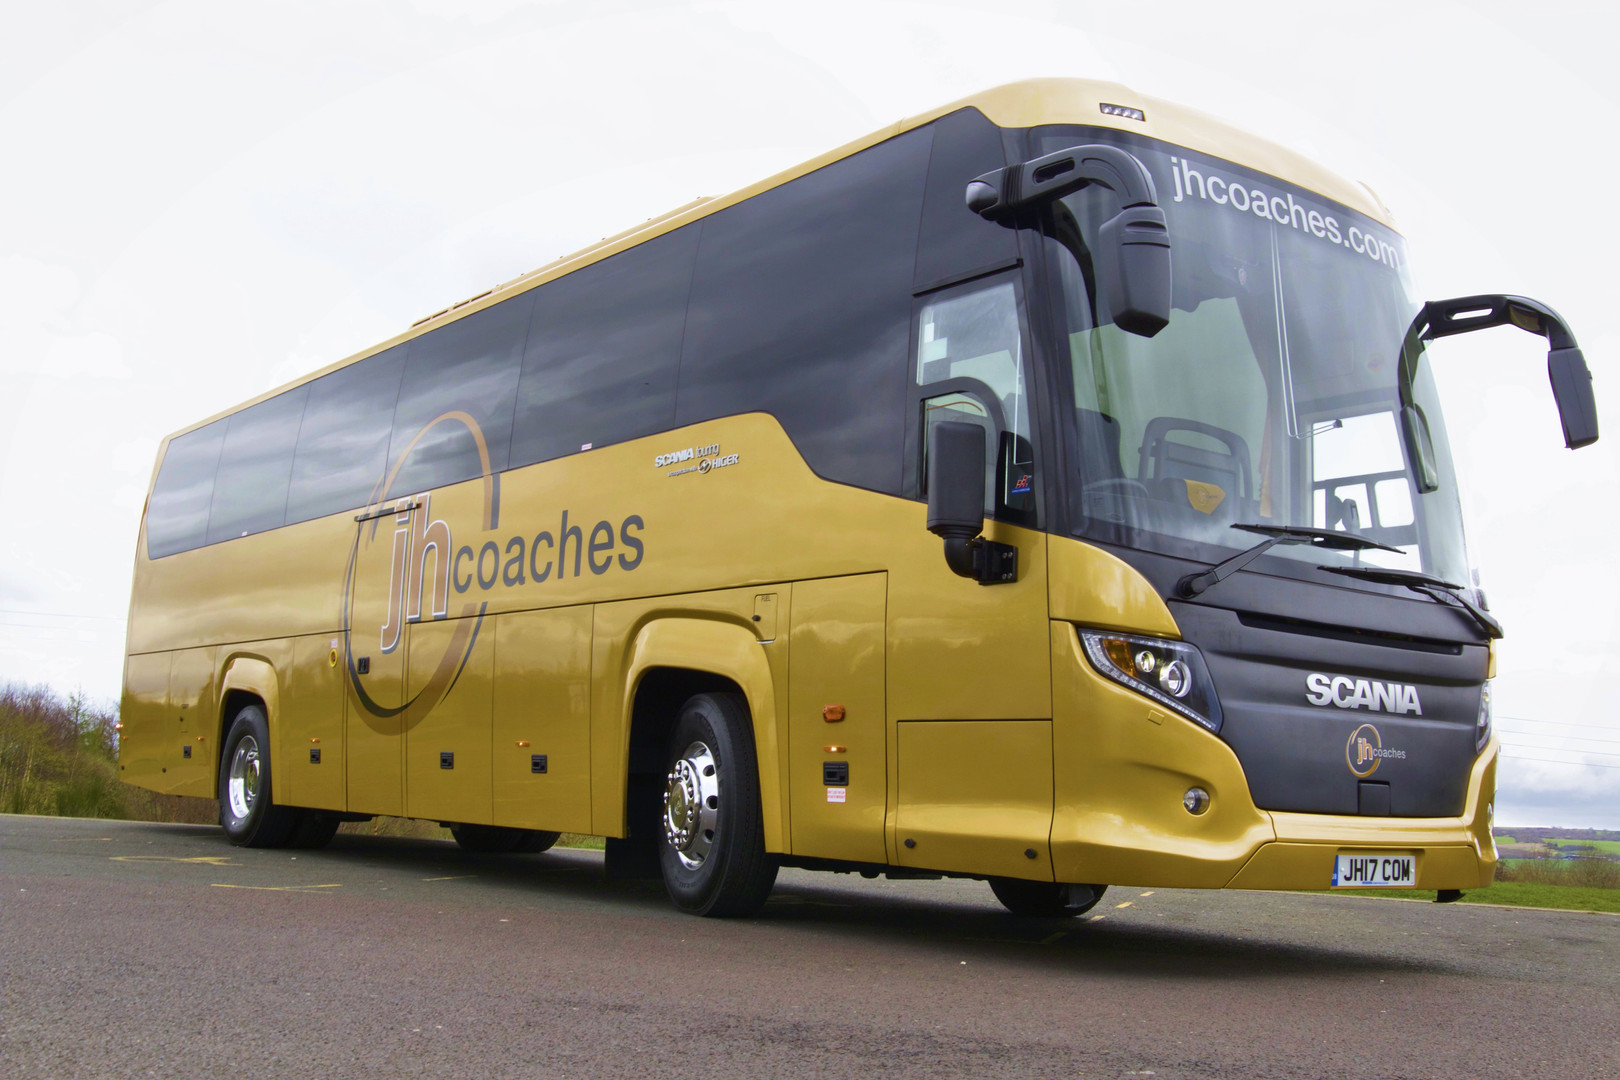 Scania Touring (49 Seats)